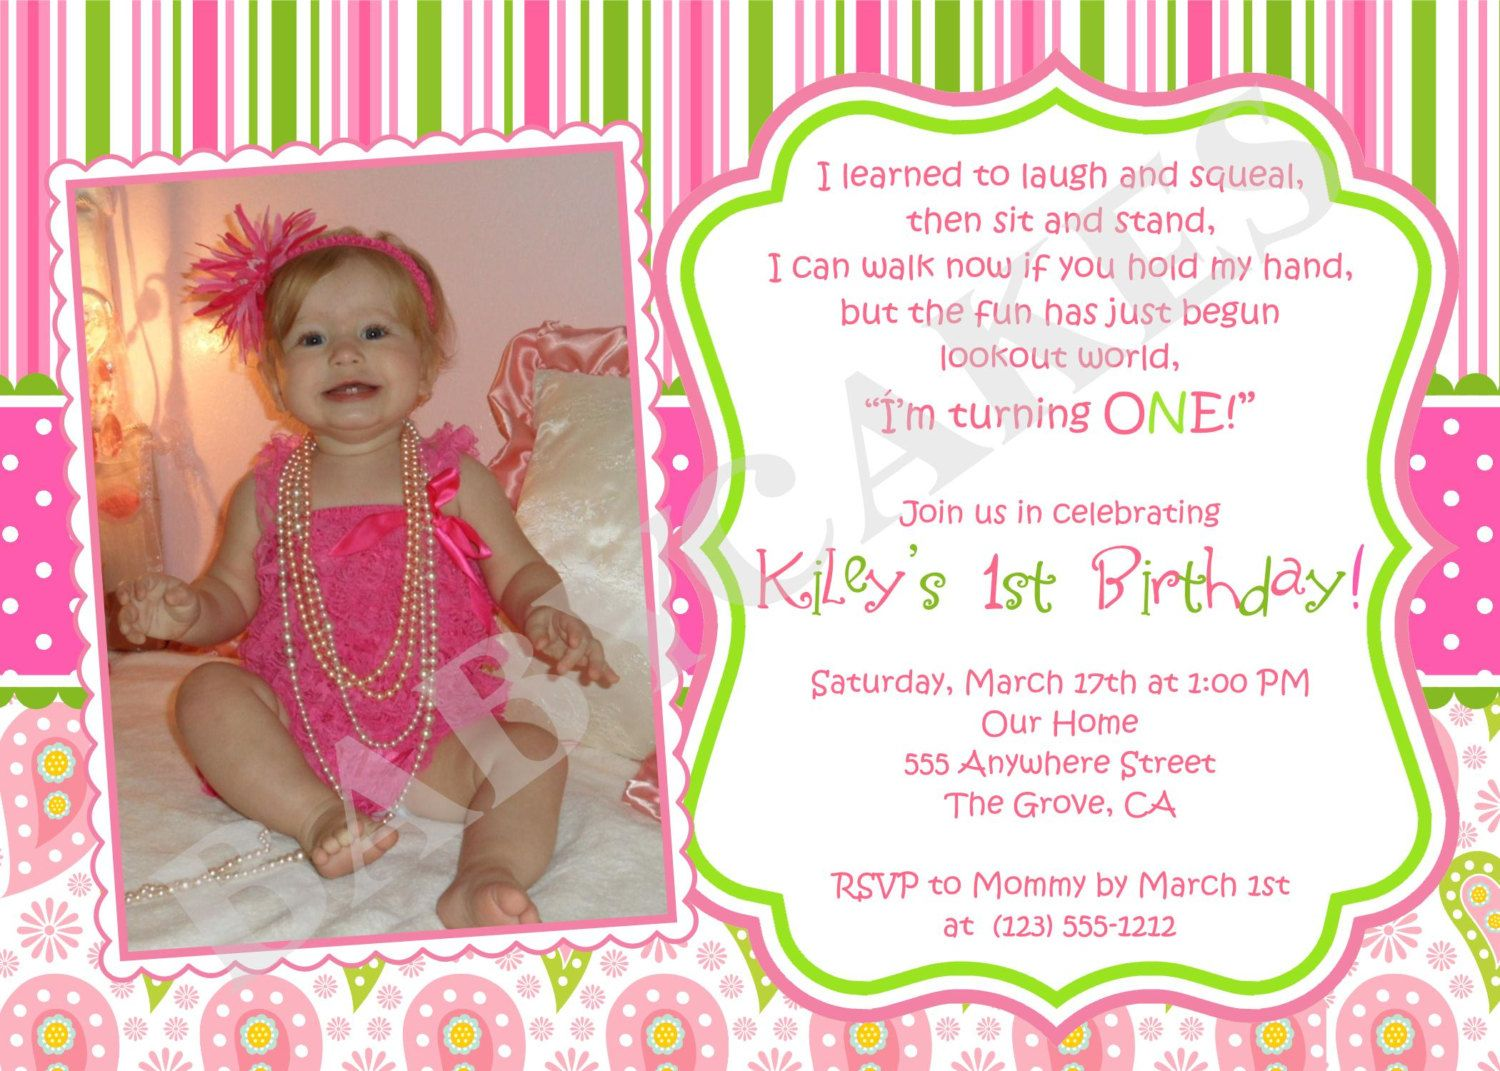 First Birthday Invitation Wording – Invitation Greetings for Birthdays